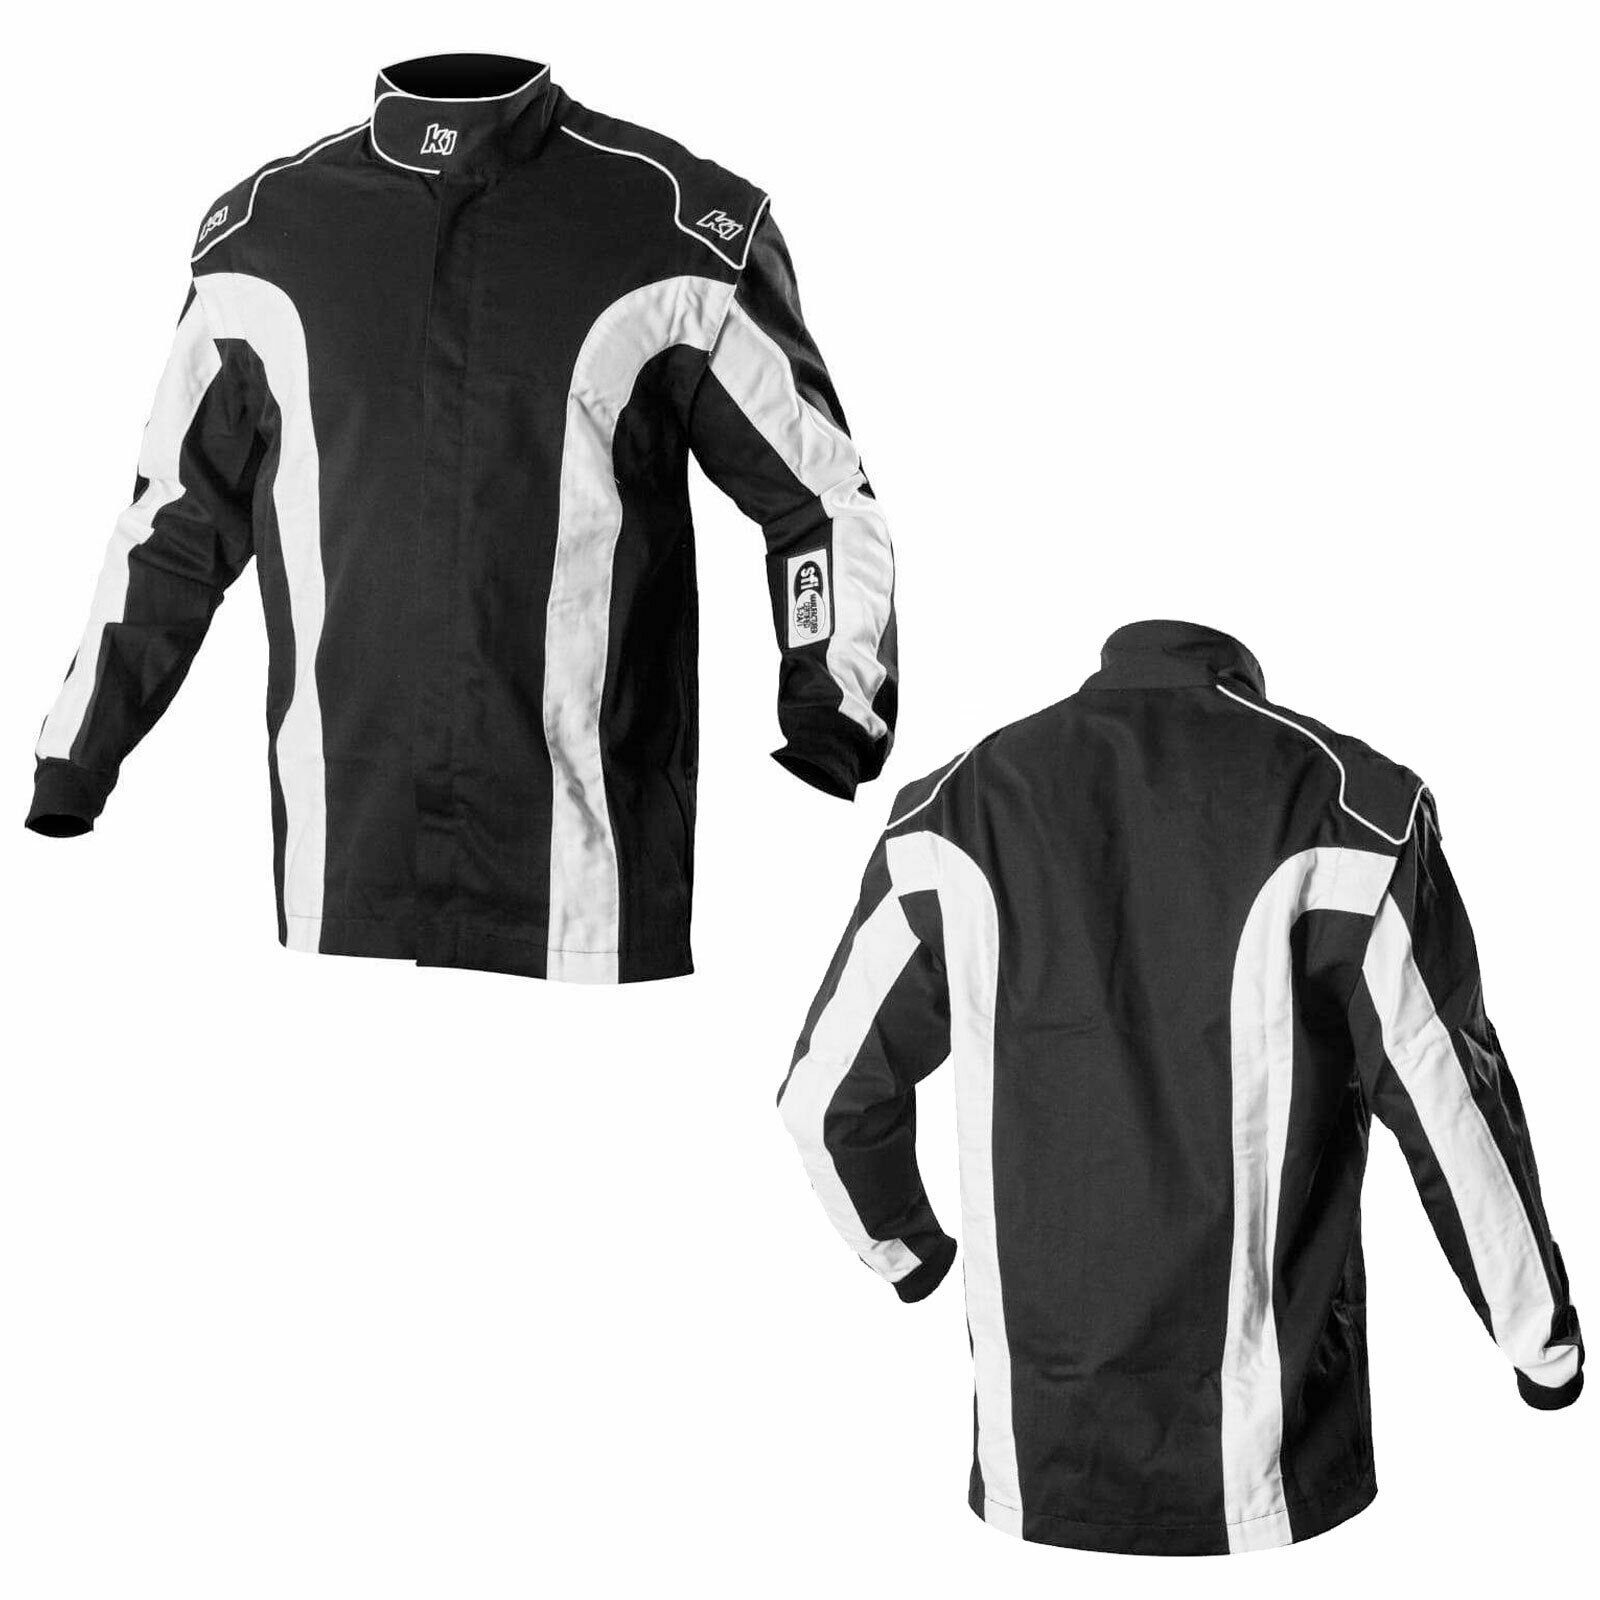 TR2 Triumph SFI-1 Auto Racing Jacket K1 Driving Fire SFI 3.2A//1 Rated Jacket